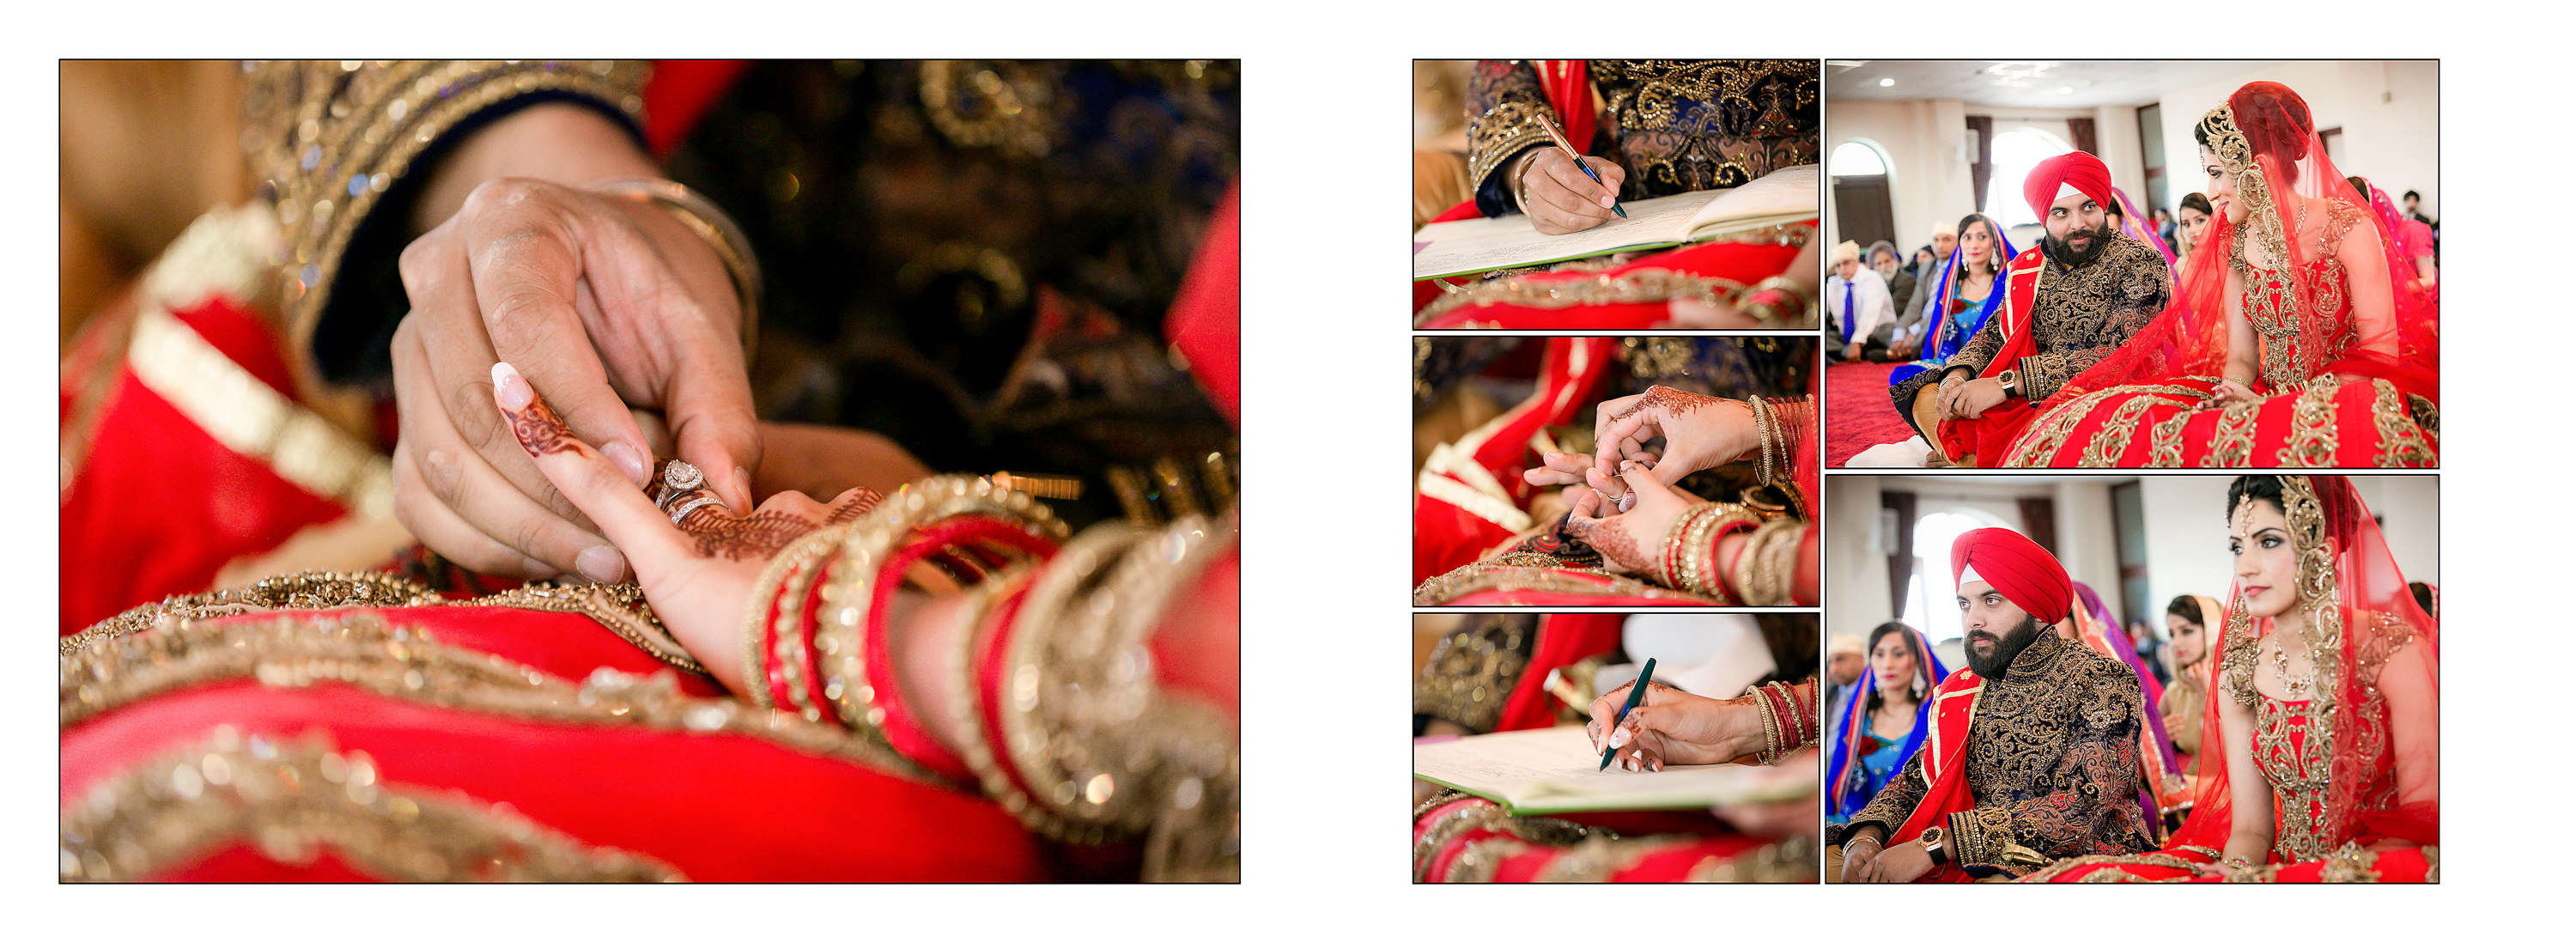 best-asian-wedding-ragley-hall-didar-virdi-13